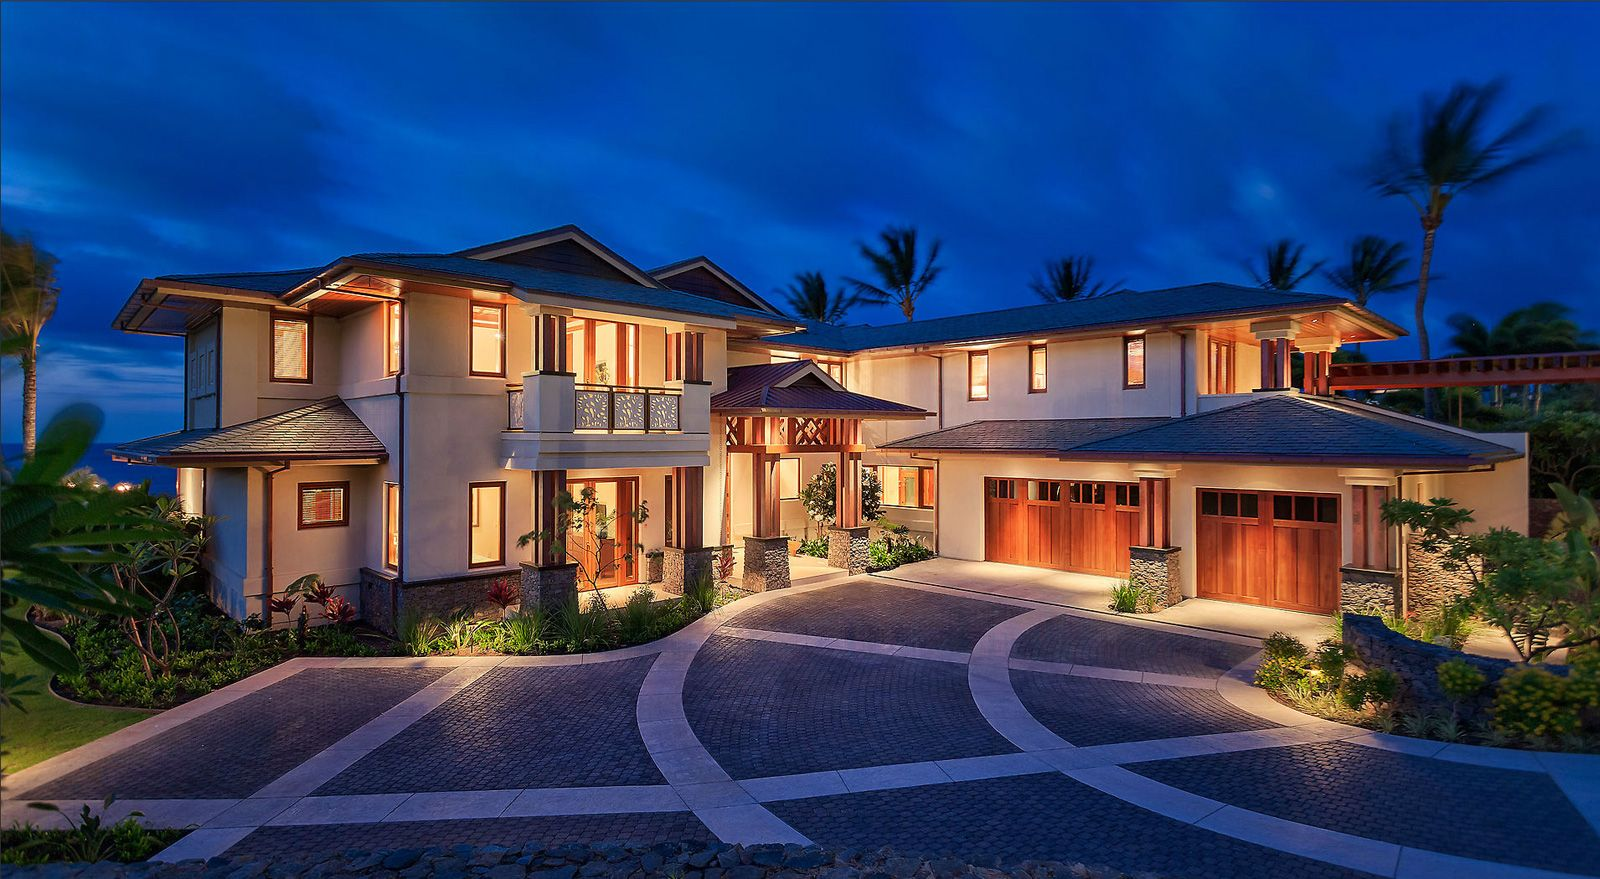 Pictures of houses on the beach - This Luxurious Resort Style Beach House Is Located In Maui Hawaii Showcasing Open And Spacious Interiors That Connects Beautifully To The Outdoors